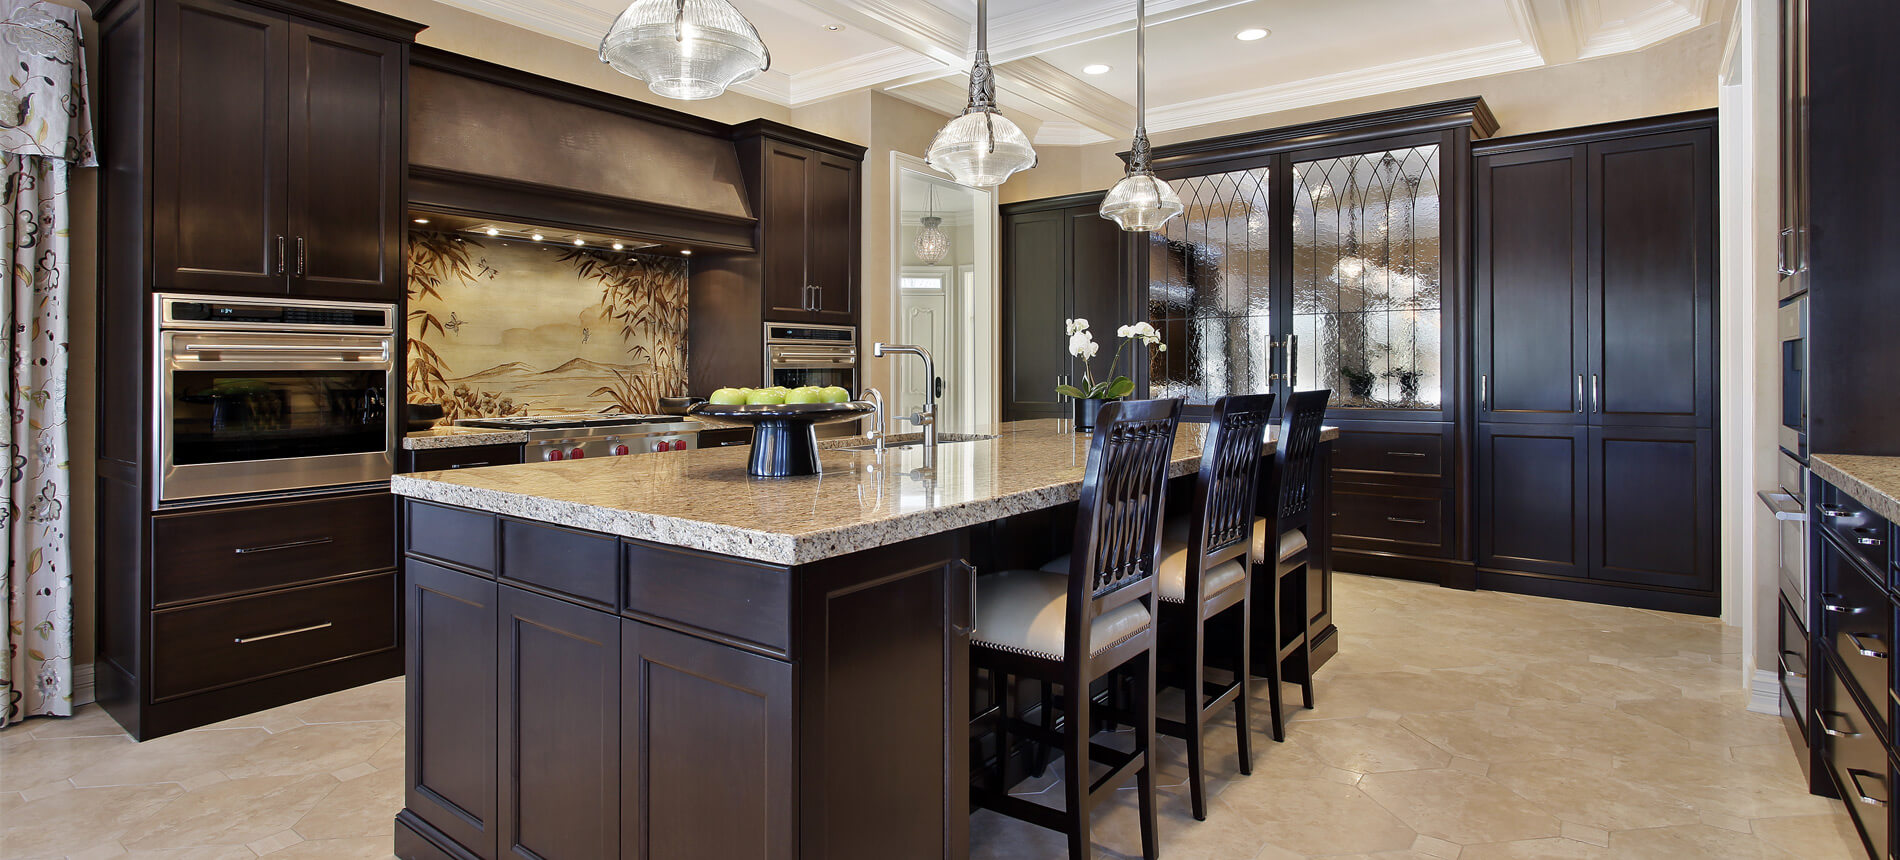 kitchen remodeling - scardina home services